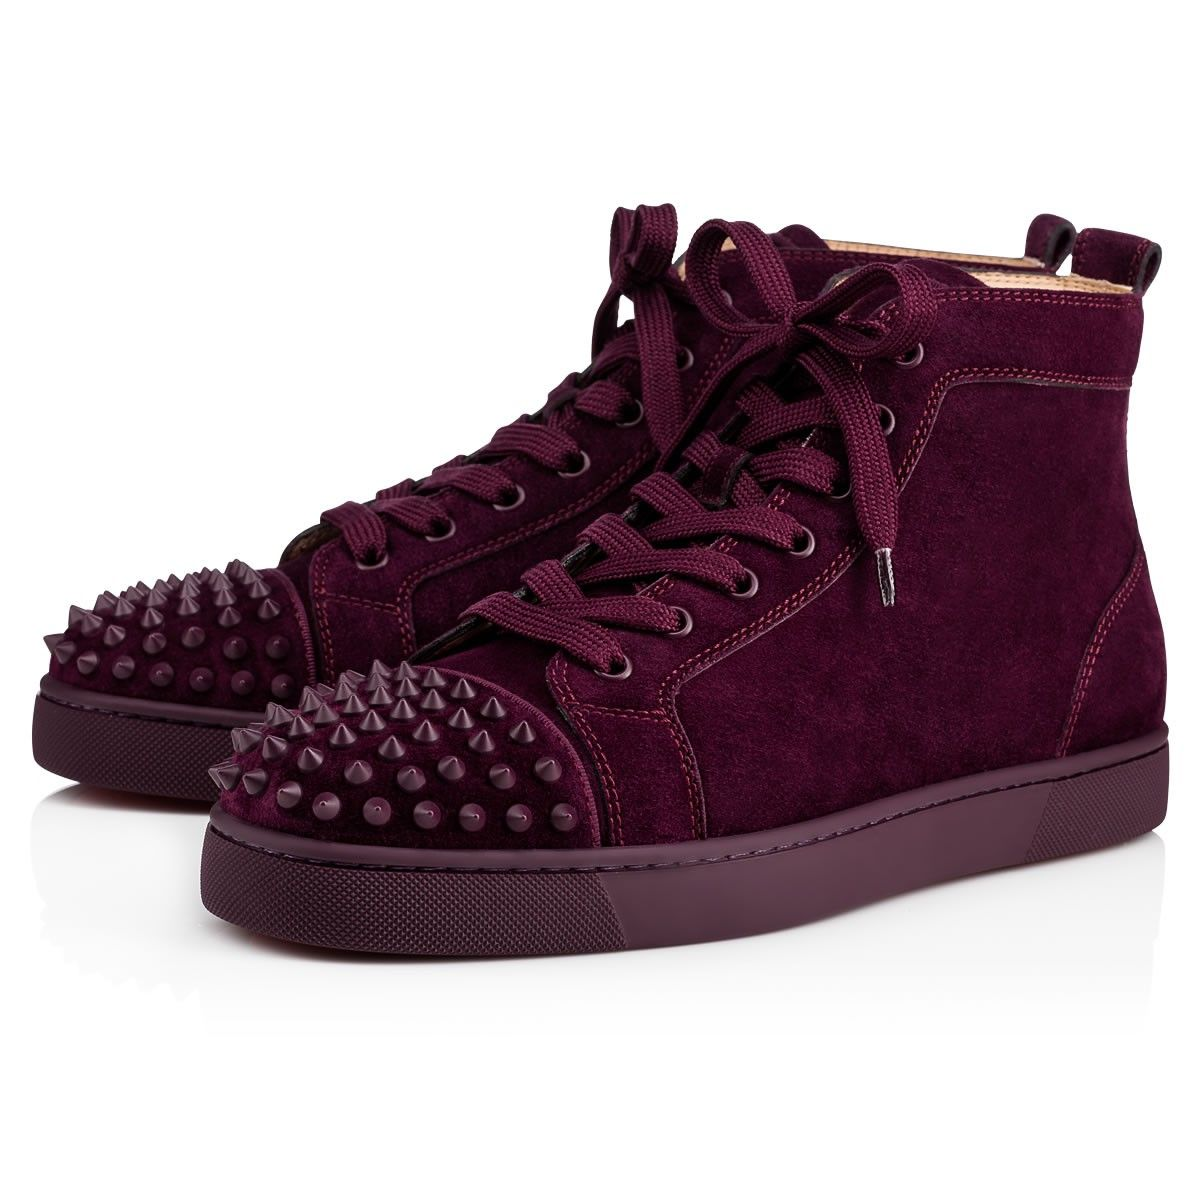 Christian Louboutin United States Official Online Boutique - Lou Spikes  Orlato Flat Merlot/Merlot Mat Suede available online. Discover more Men  Shoes by ...